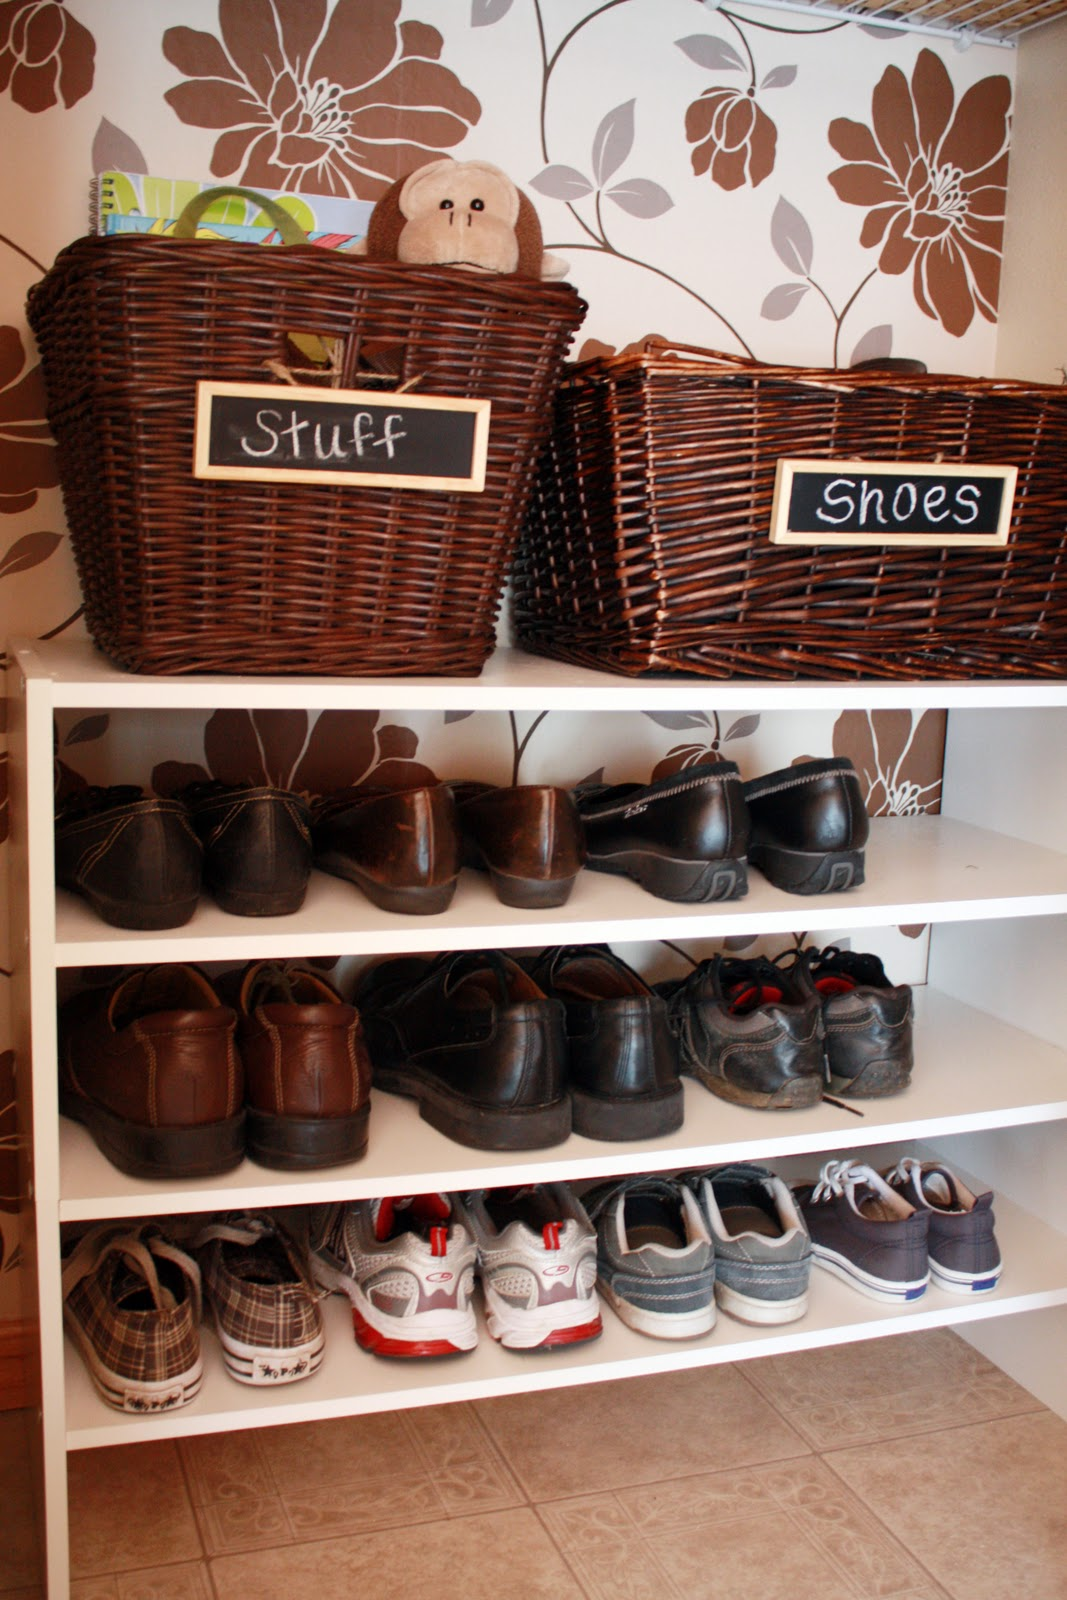 Iheart organizing april challenge project purge shoes - Ideas for organizing shoes ...